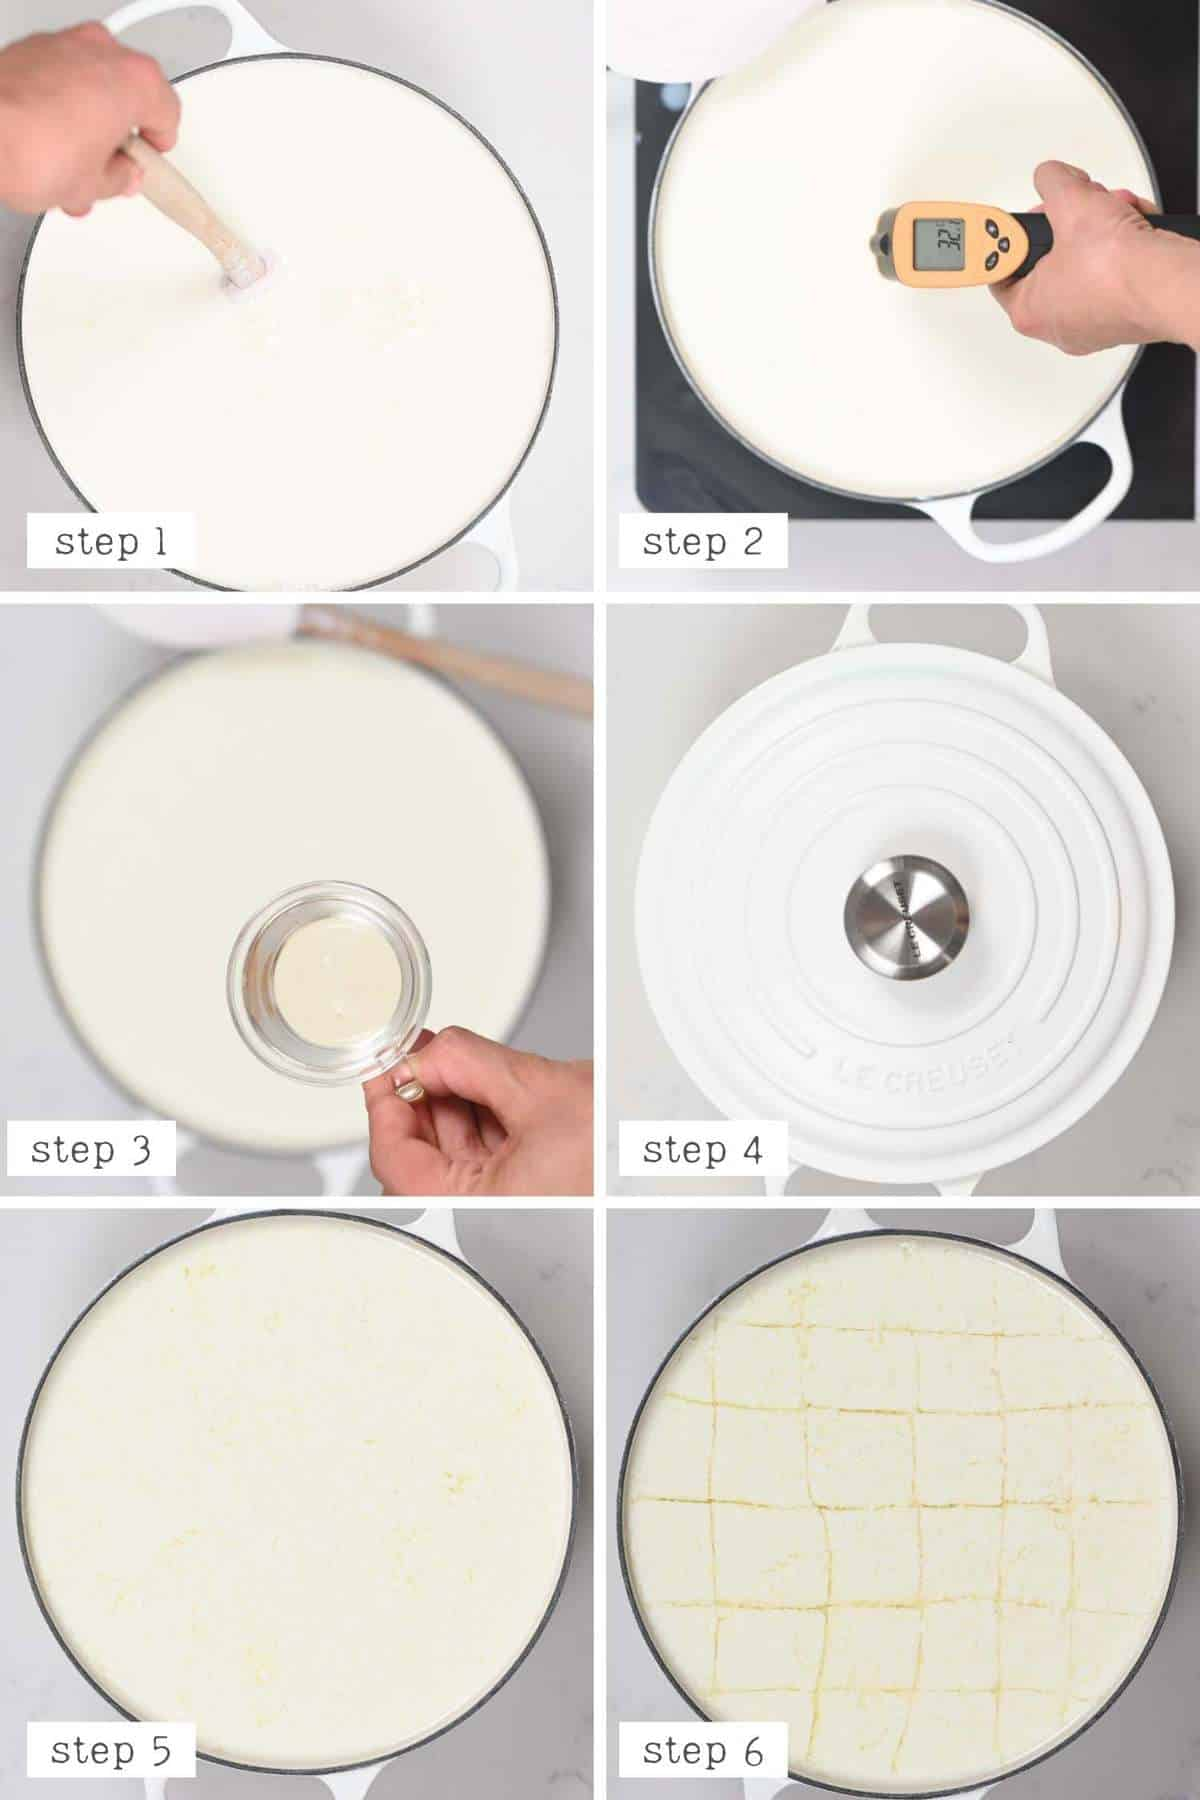 Initial steps for making mozzarella Making and cutting the curds